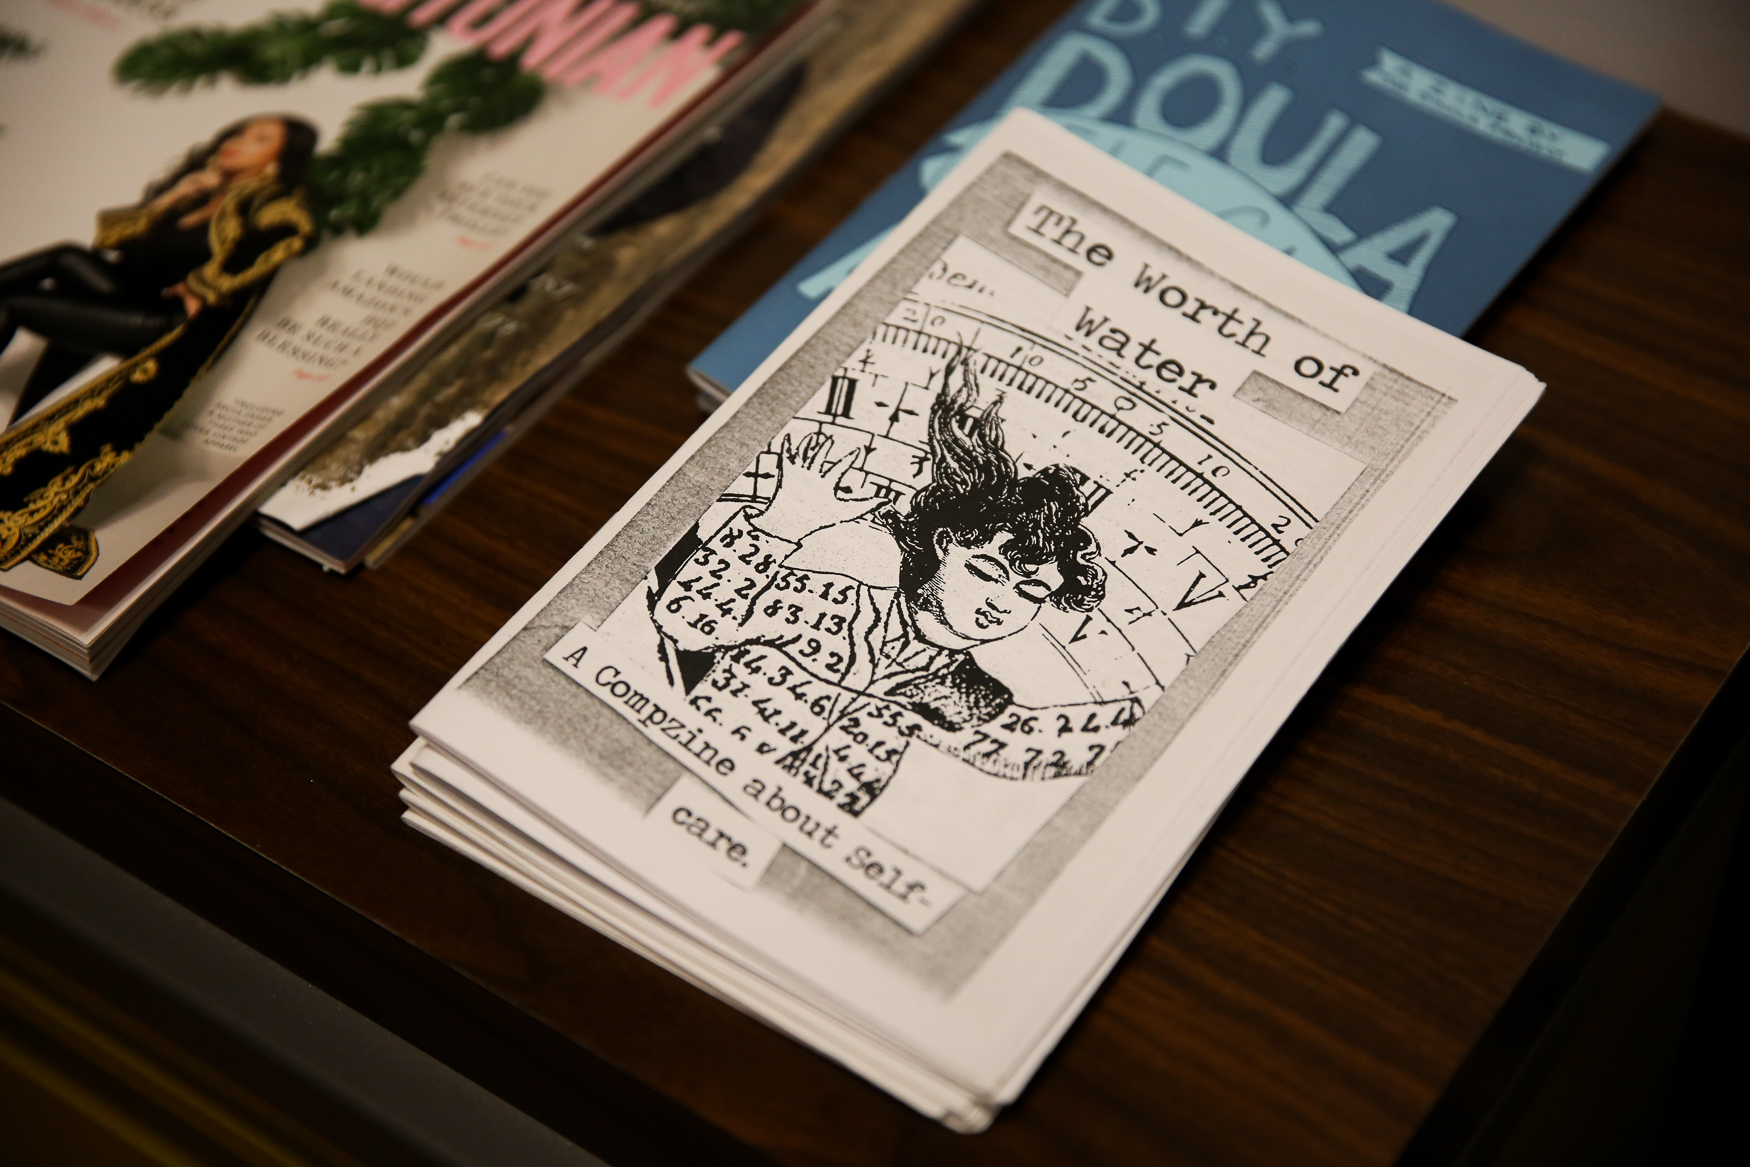 Eaton offers a Newsstand, which features local zines and foreign publications. (Amanda Andrade-Rhoades/DC Refined)